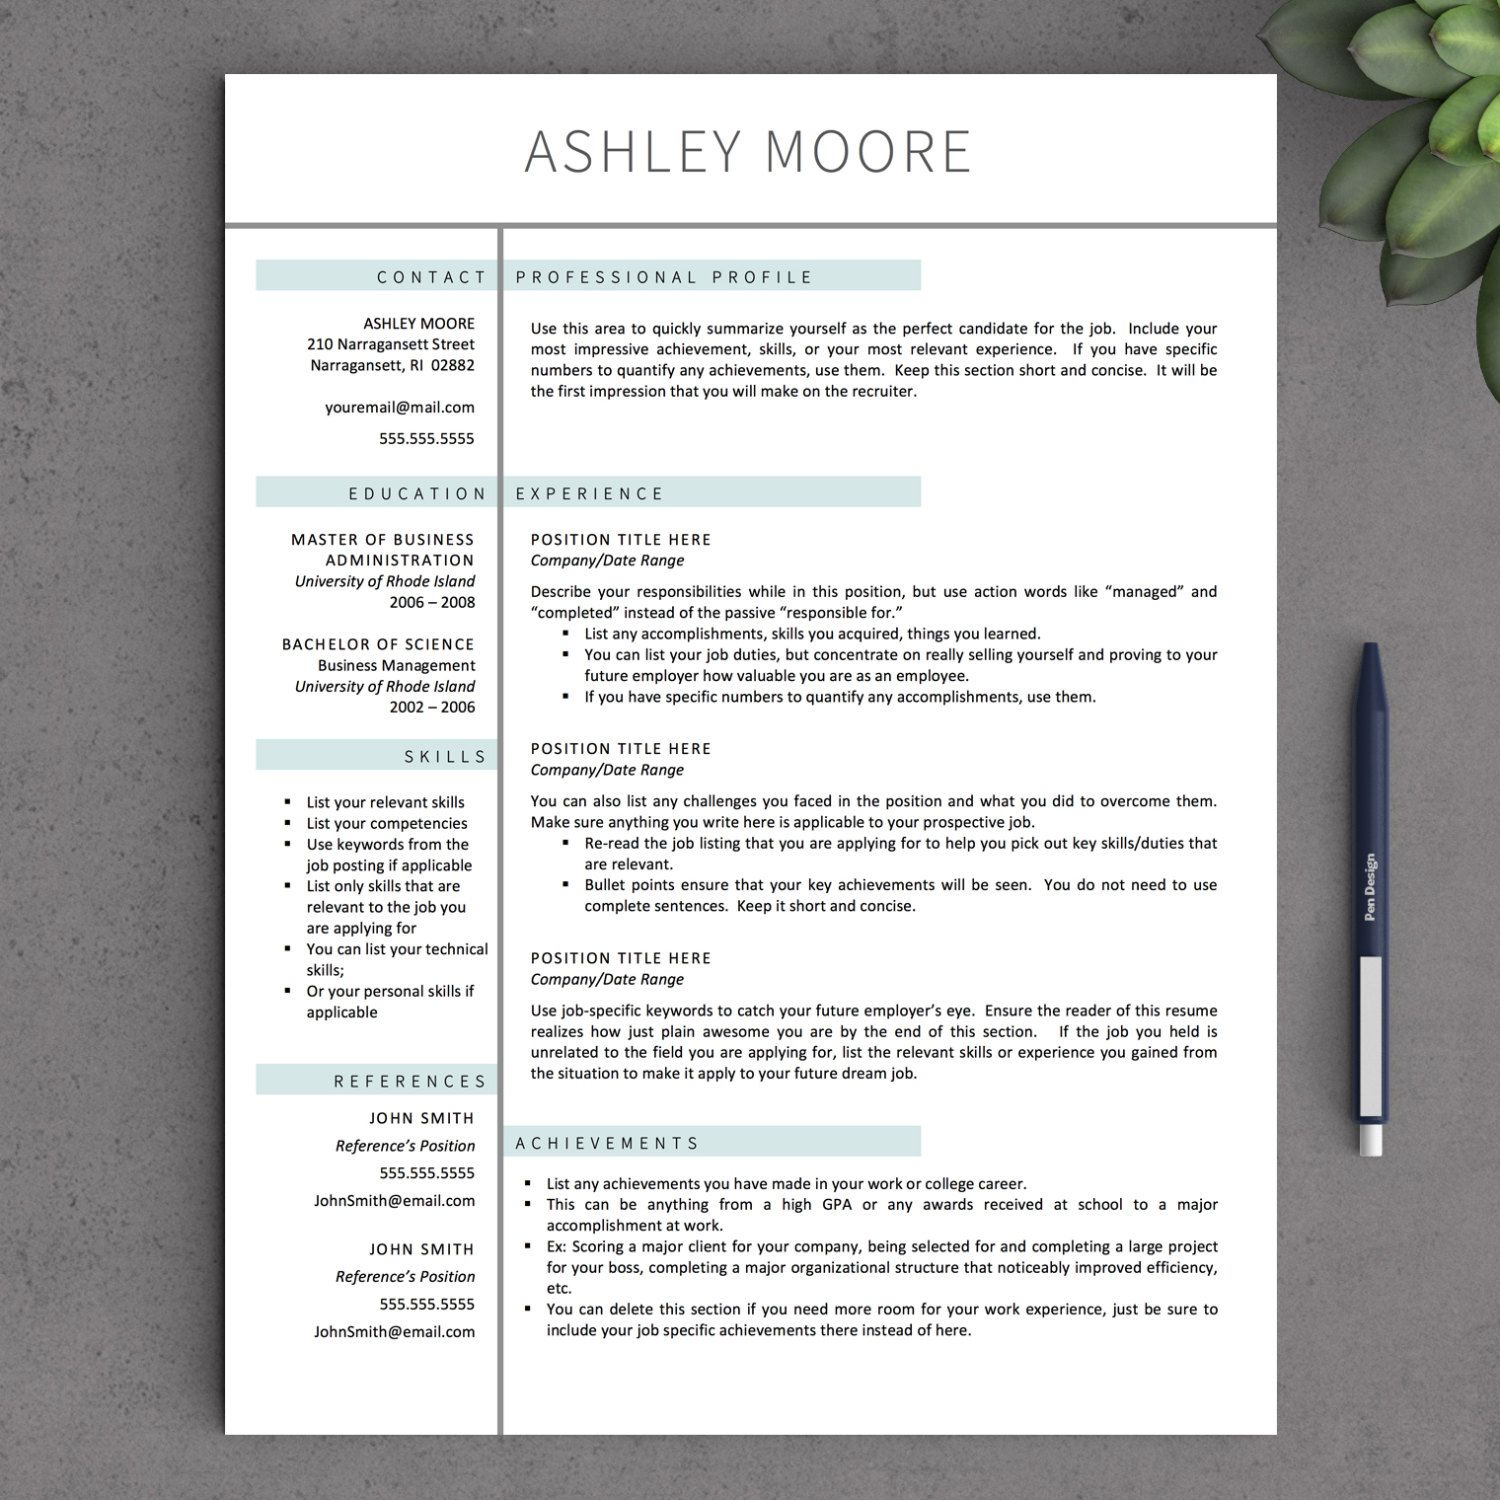 Apple pages resume template download apple pages resume template apple pages resume template download apple pages resume template download apple yelopaper